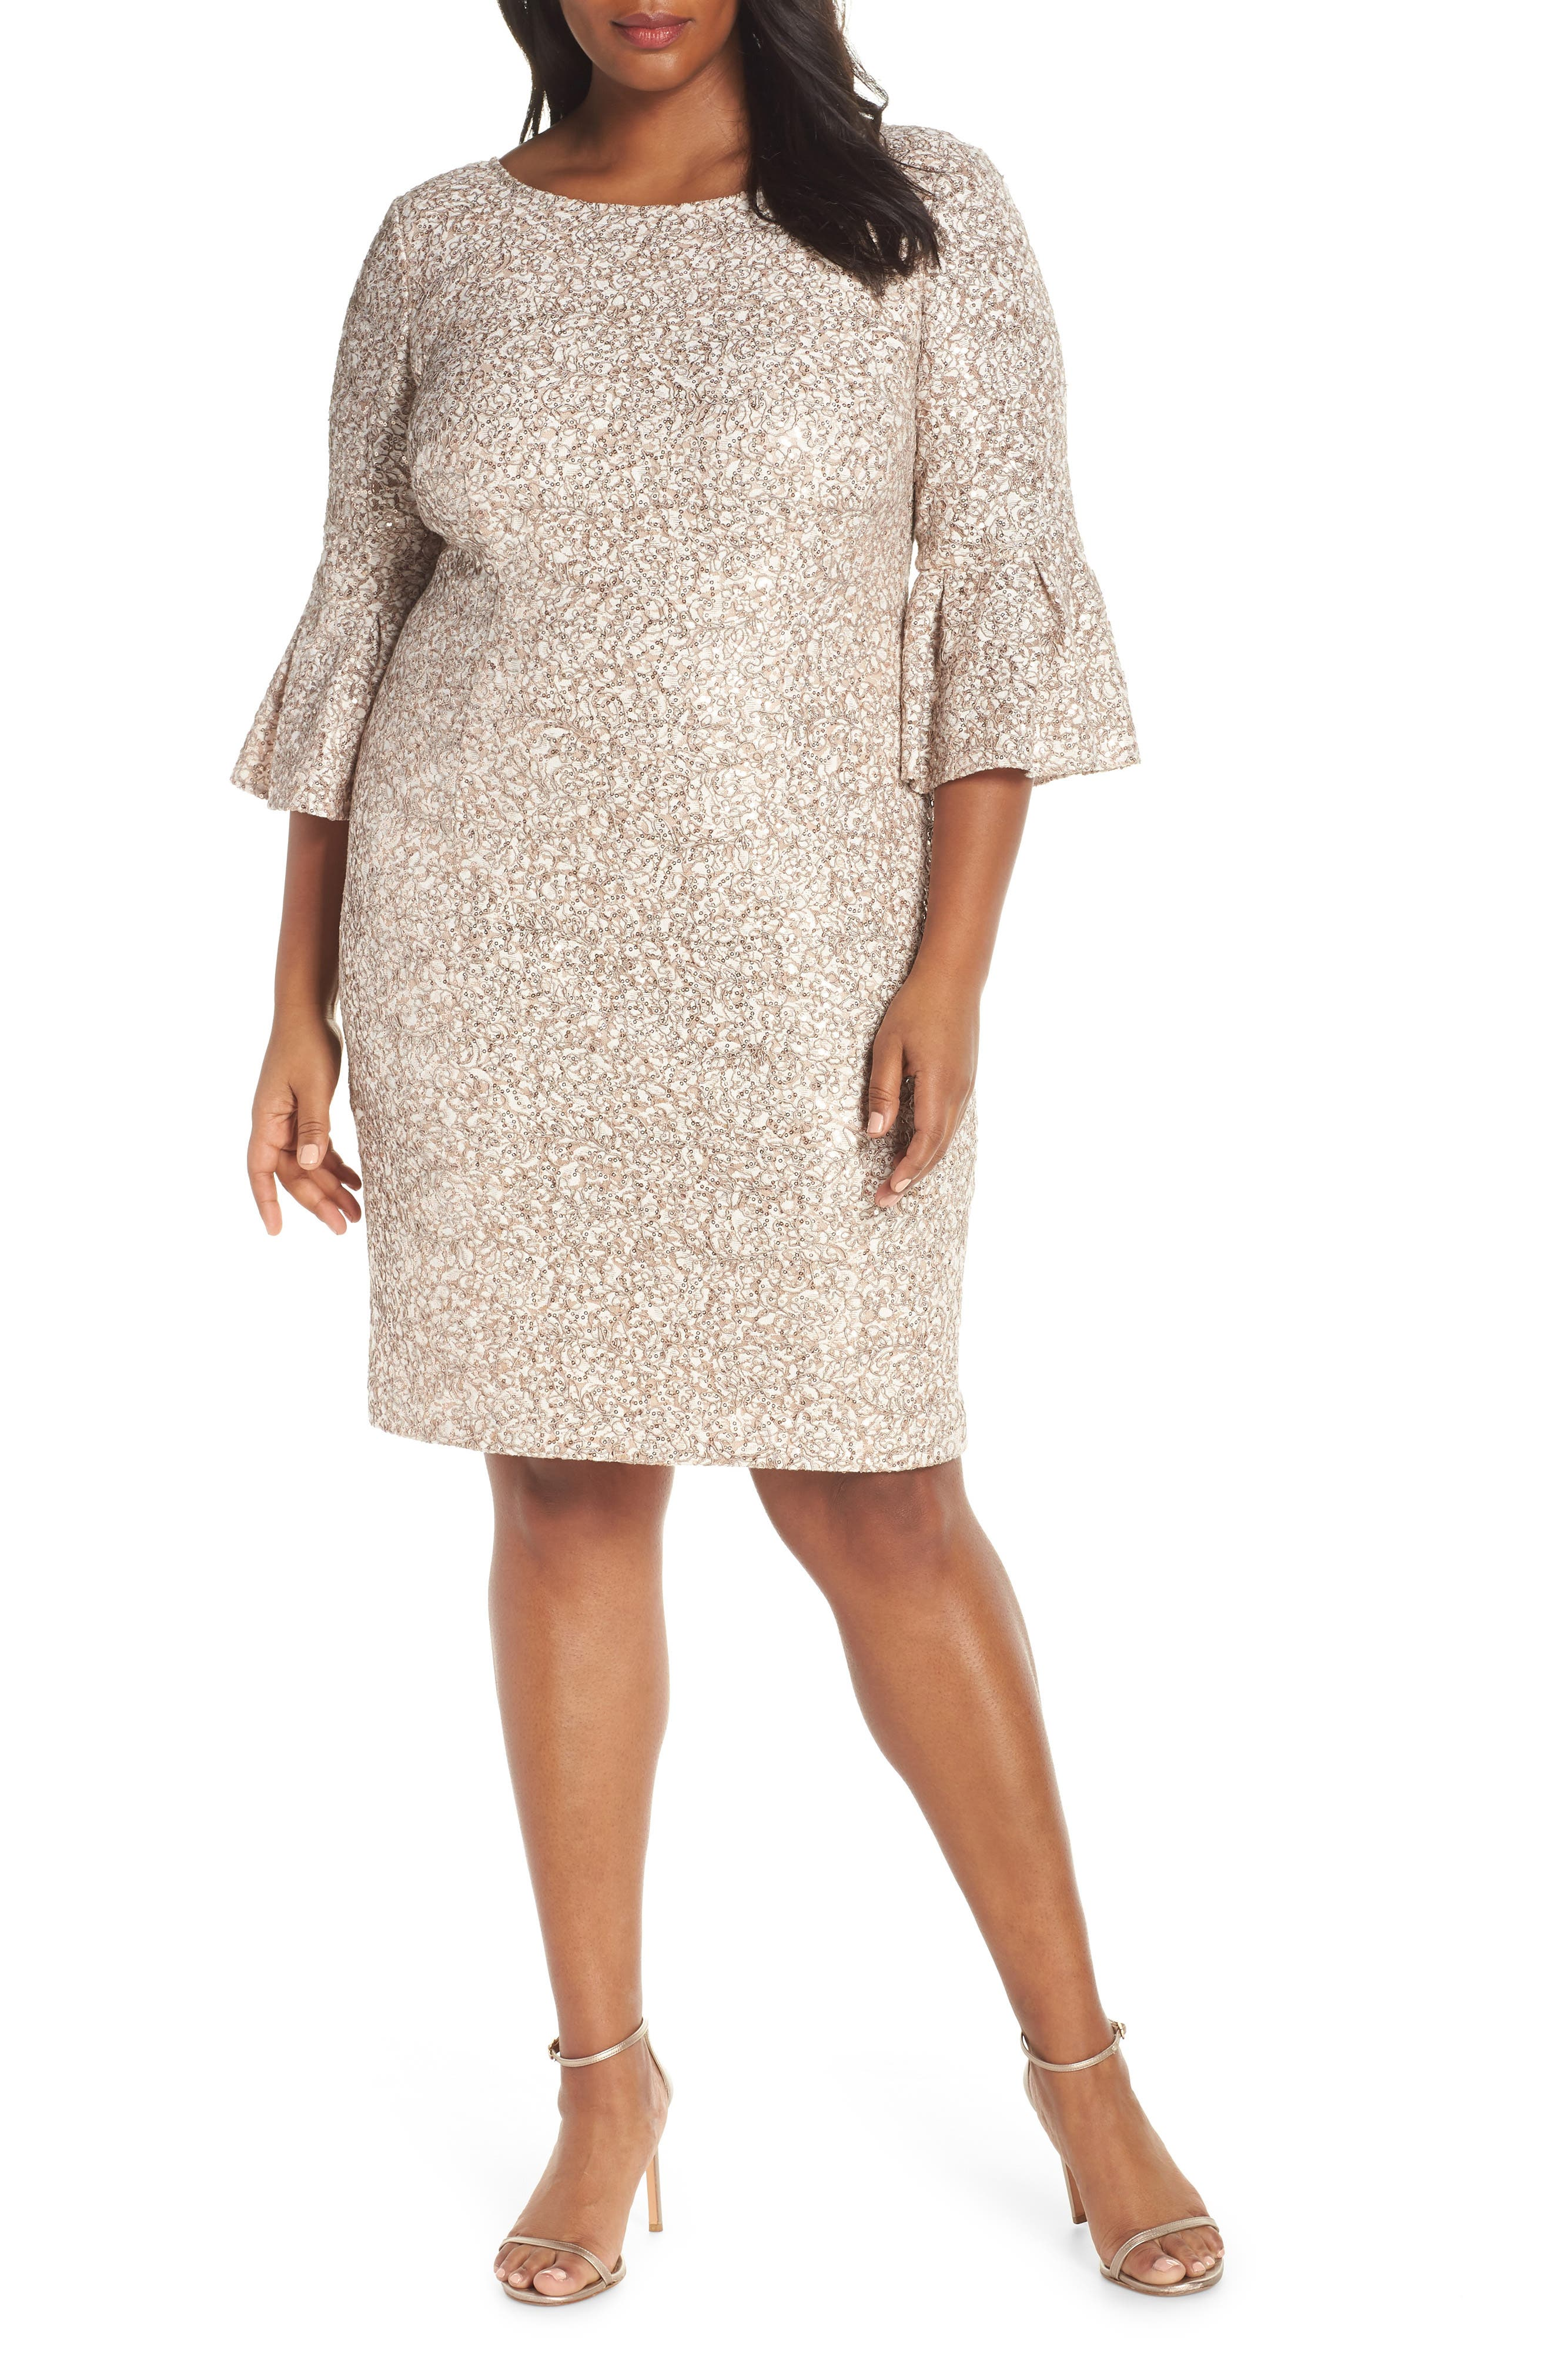 Embroidered Lace Shift Dress,                             Main thumbnail 1, color,                             CHAMPAGNE/ IVORY